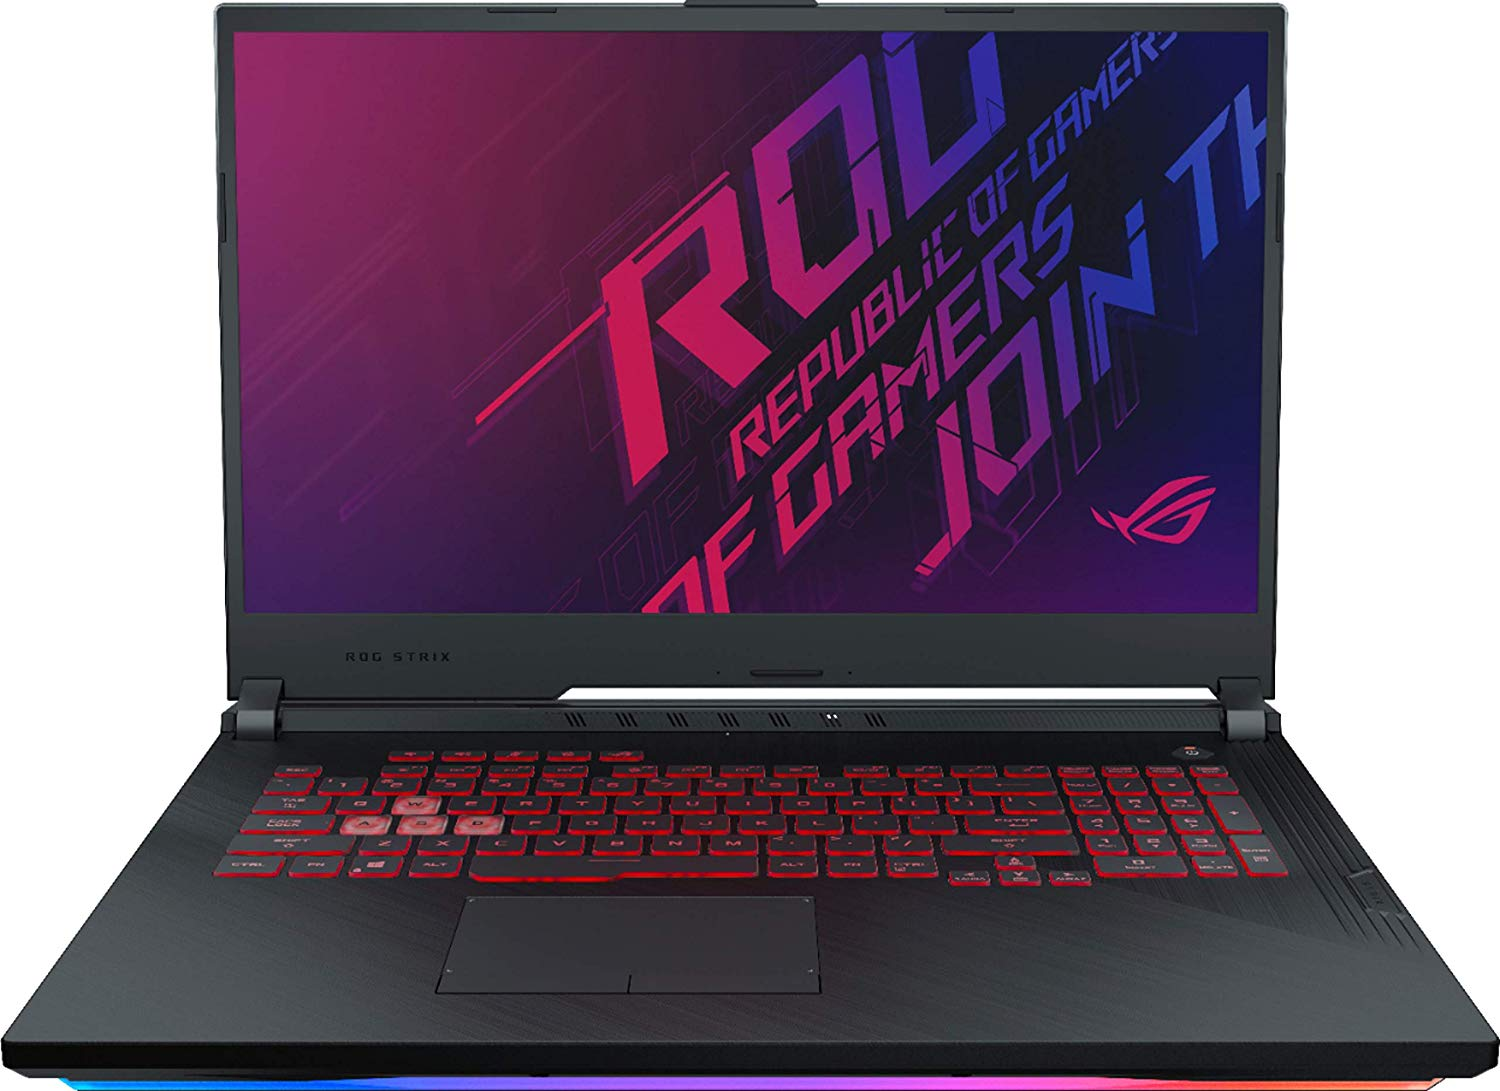 Asus ROG G731GU-EV005 Gaming Laptop